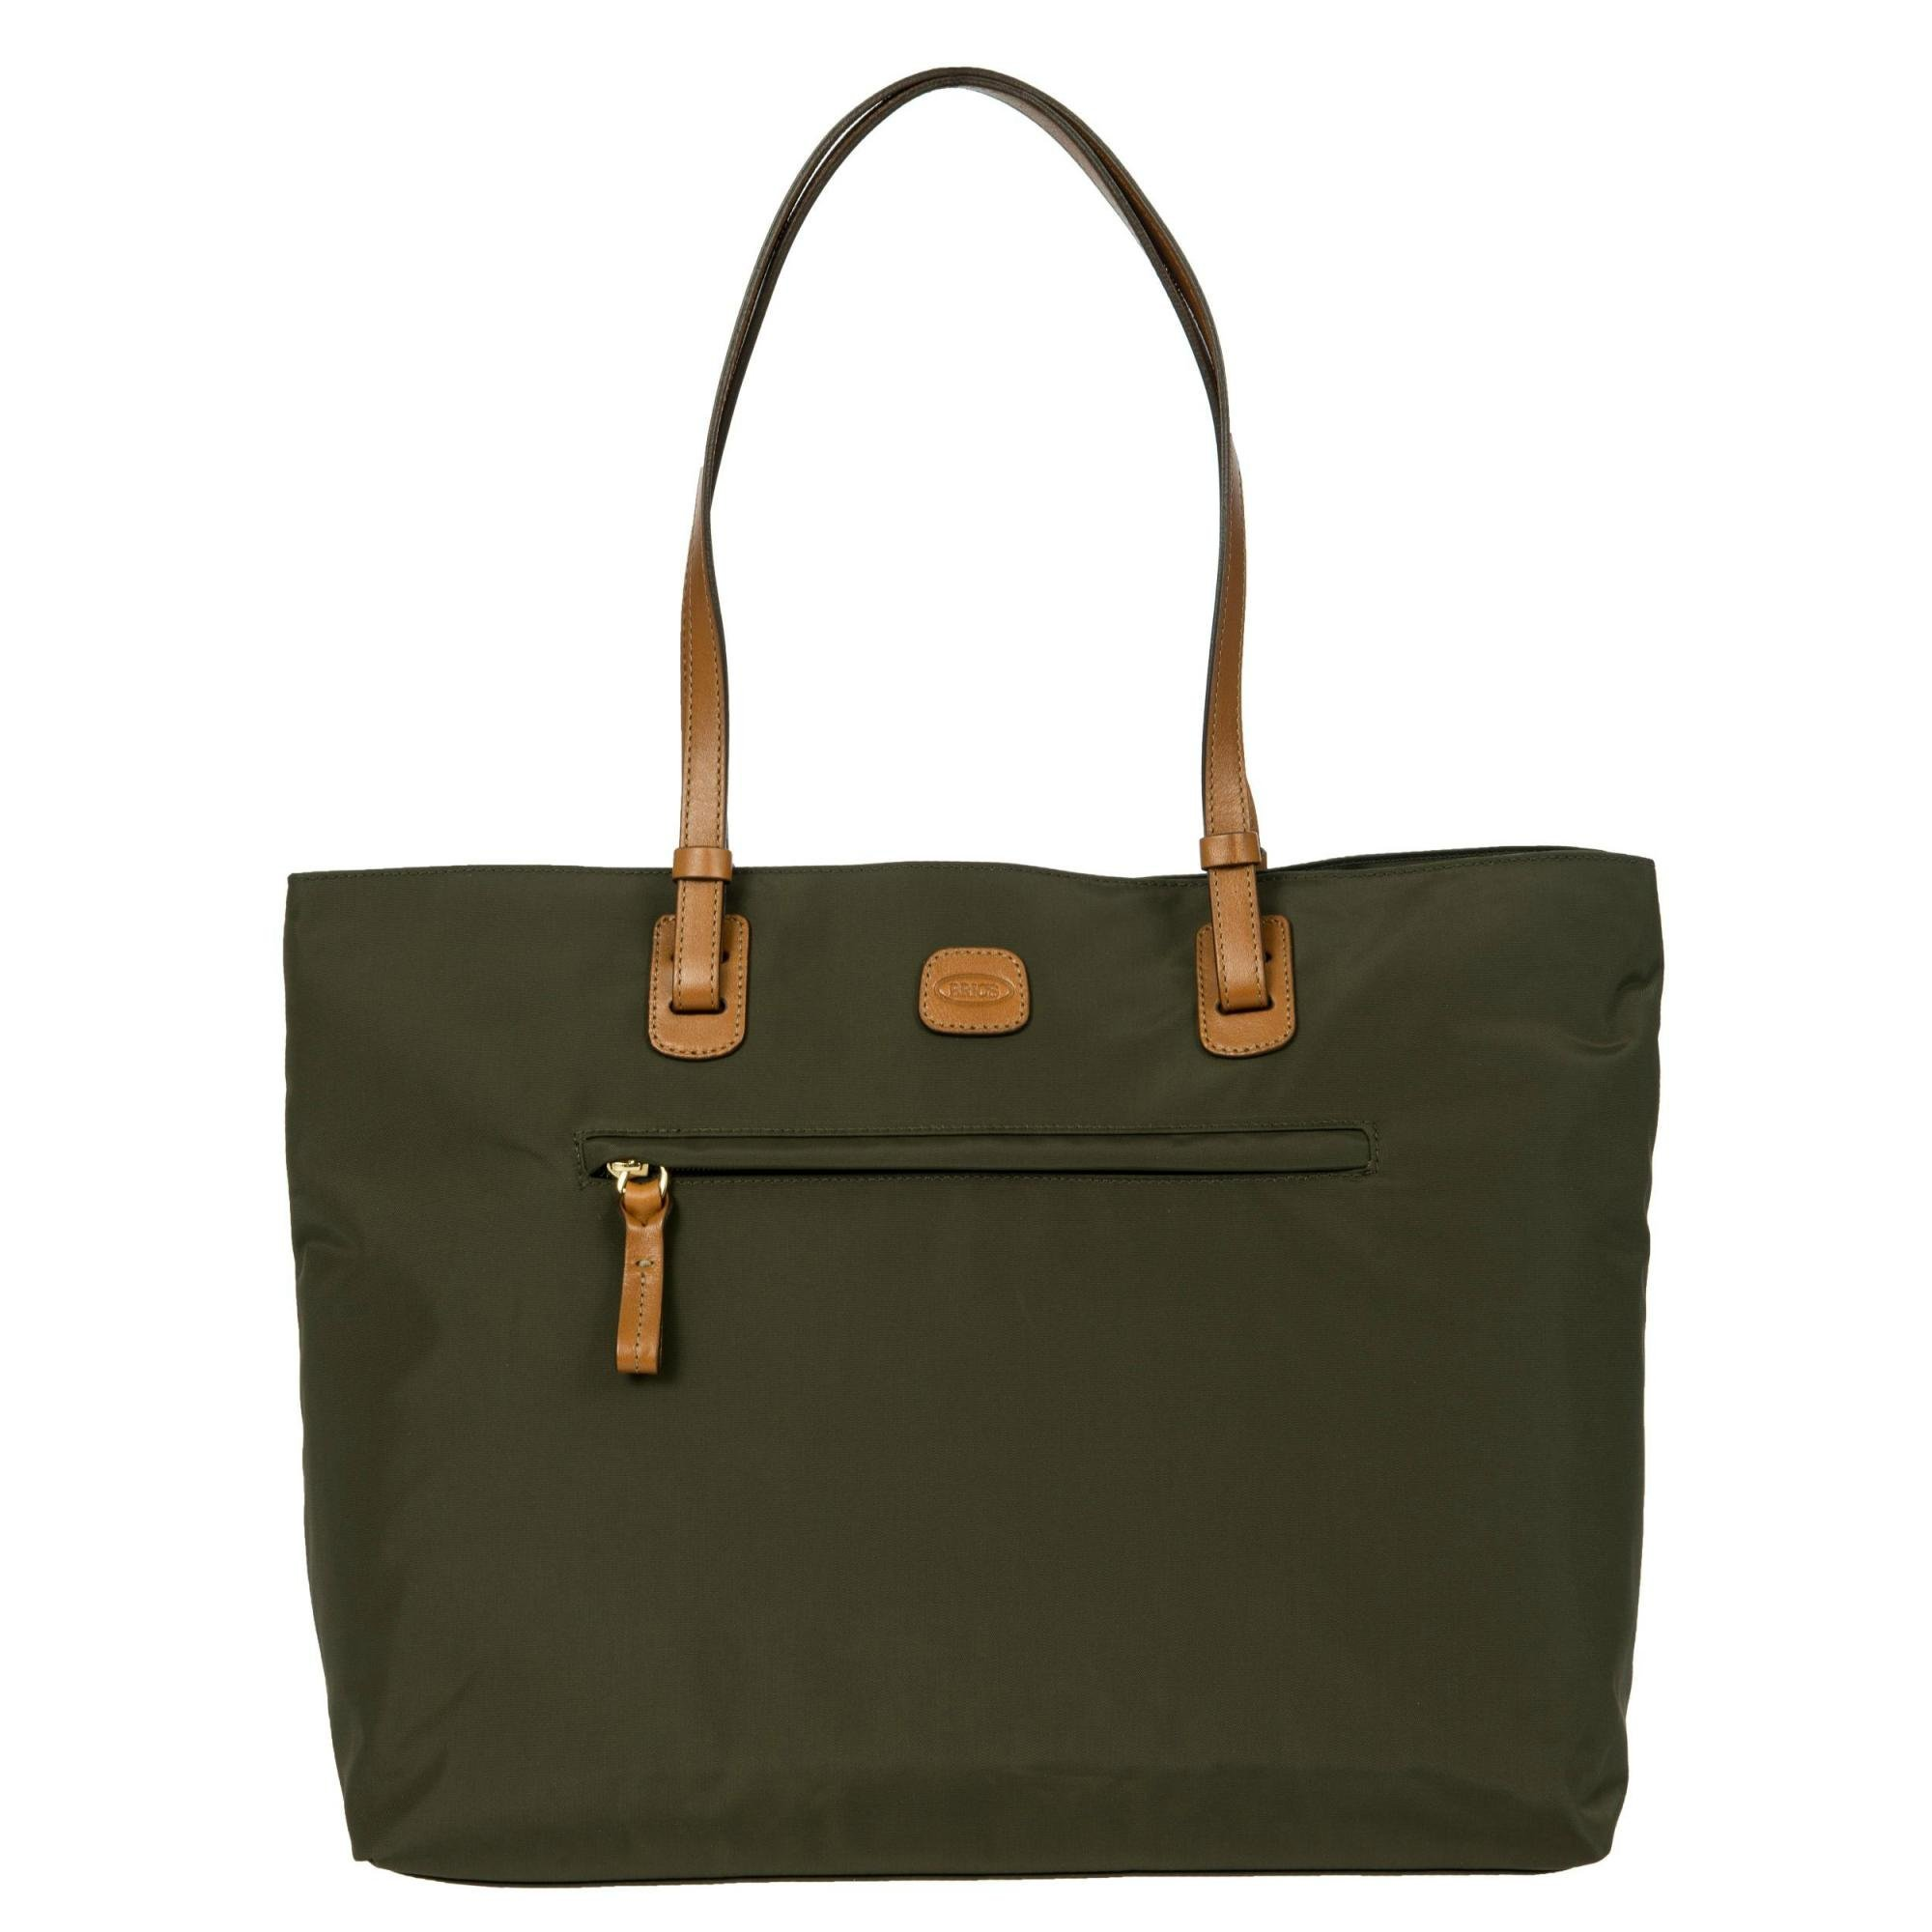 Bric's Women's X x-Travel 2.0 Ladies' Business Tablet Bag Laptop Tote, Olive, One Size by Bric's